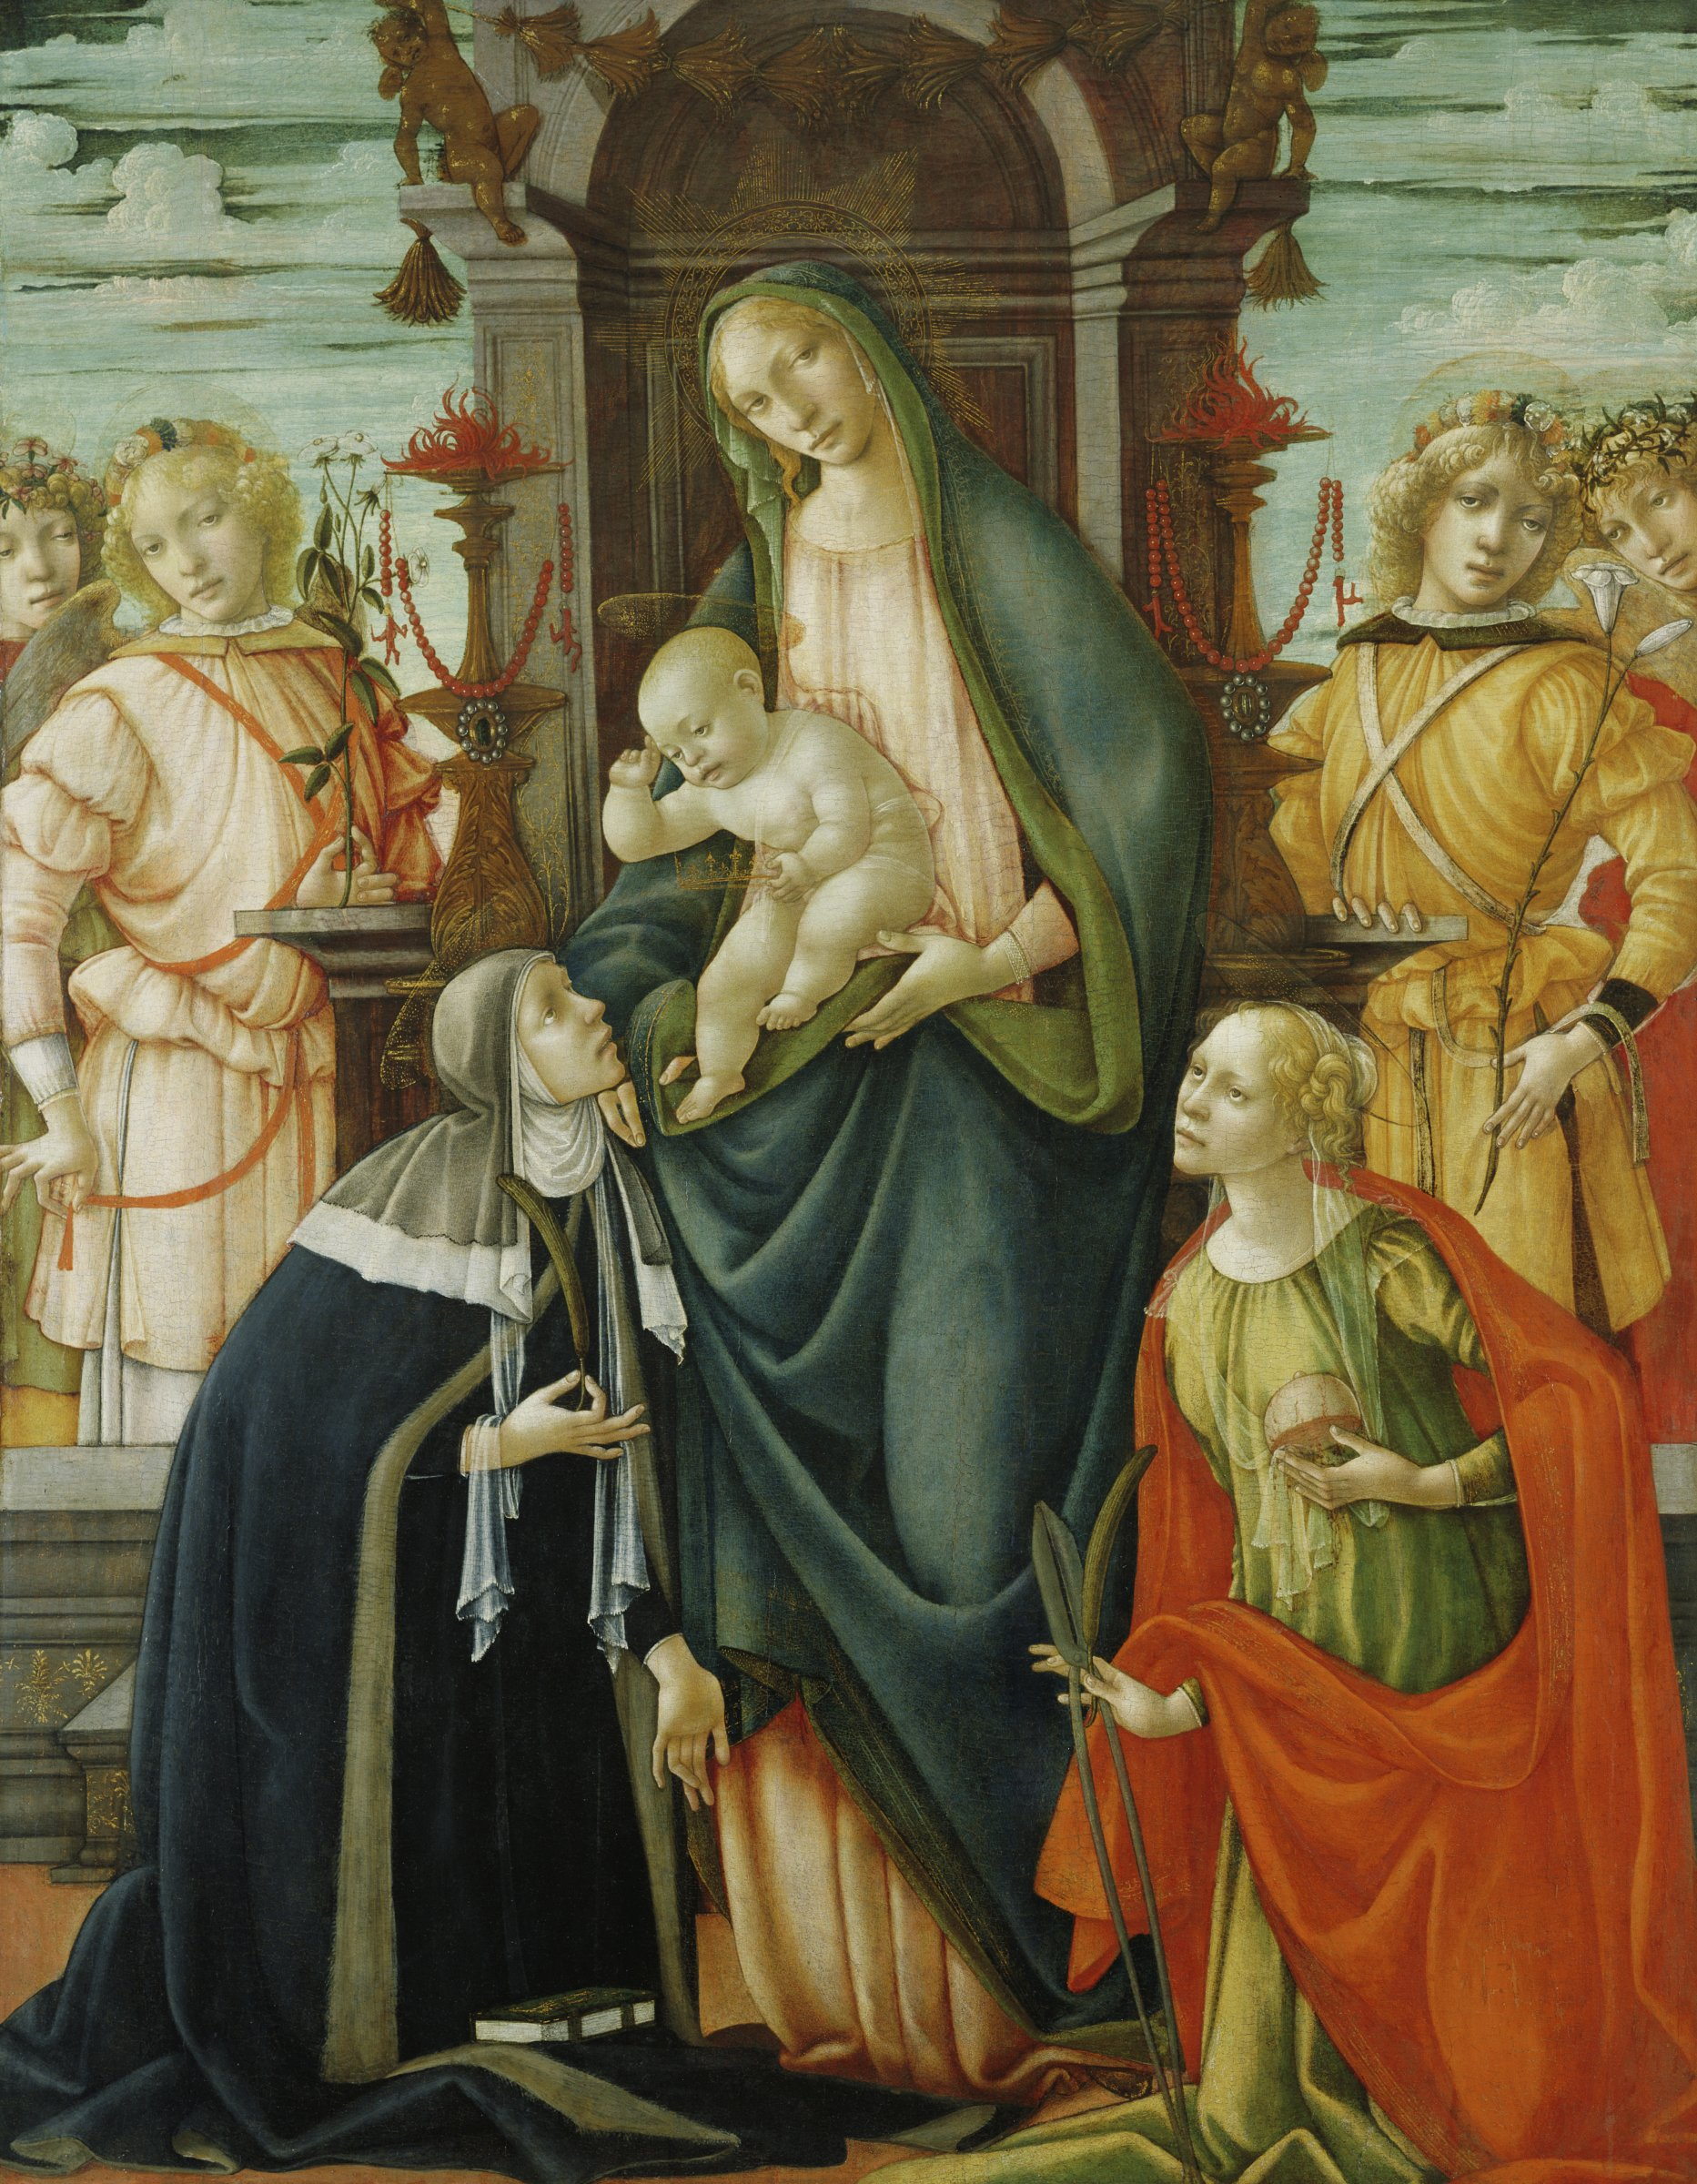 The Virgin Mary sits on a high backed throne with the Christ Child in her lap. Saint Paula kneels at her feet on the left. Saint Agatha kneels to the right. Both saints carry symbols that identify them. Behind the throne stand four angels.